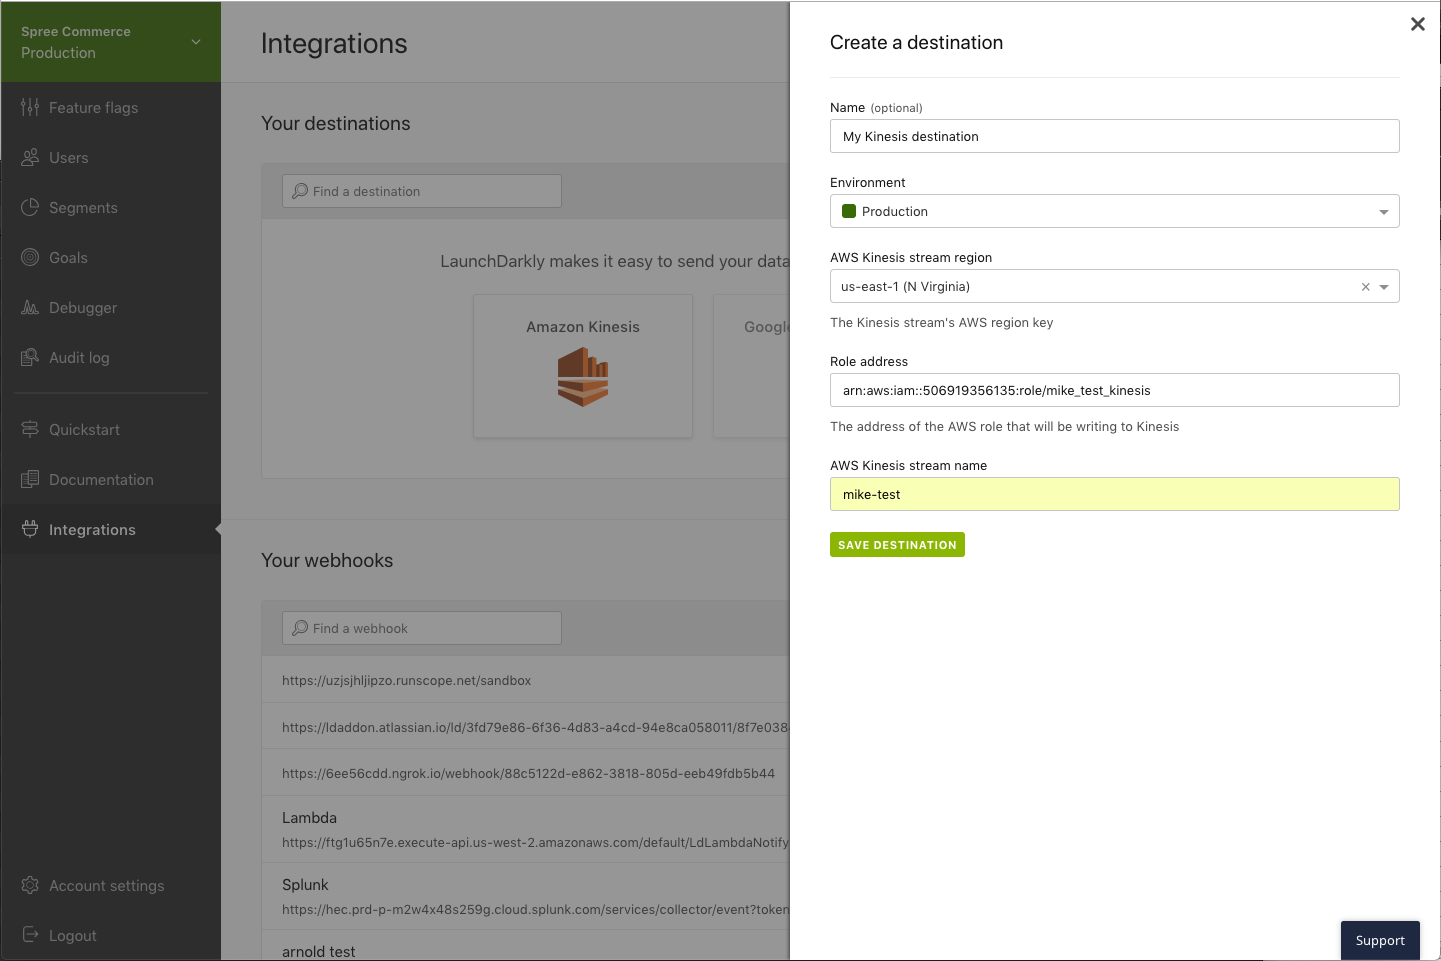 A Kinesis destination with AWS information, a name and environment selected.